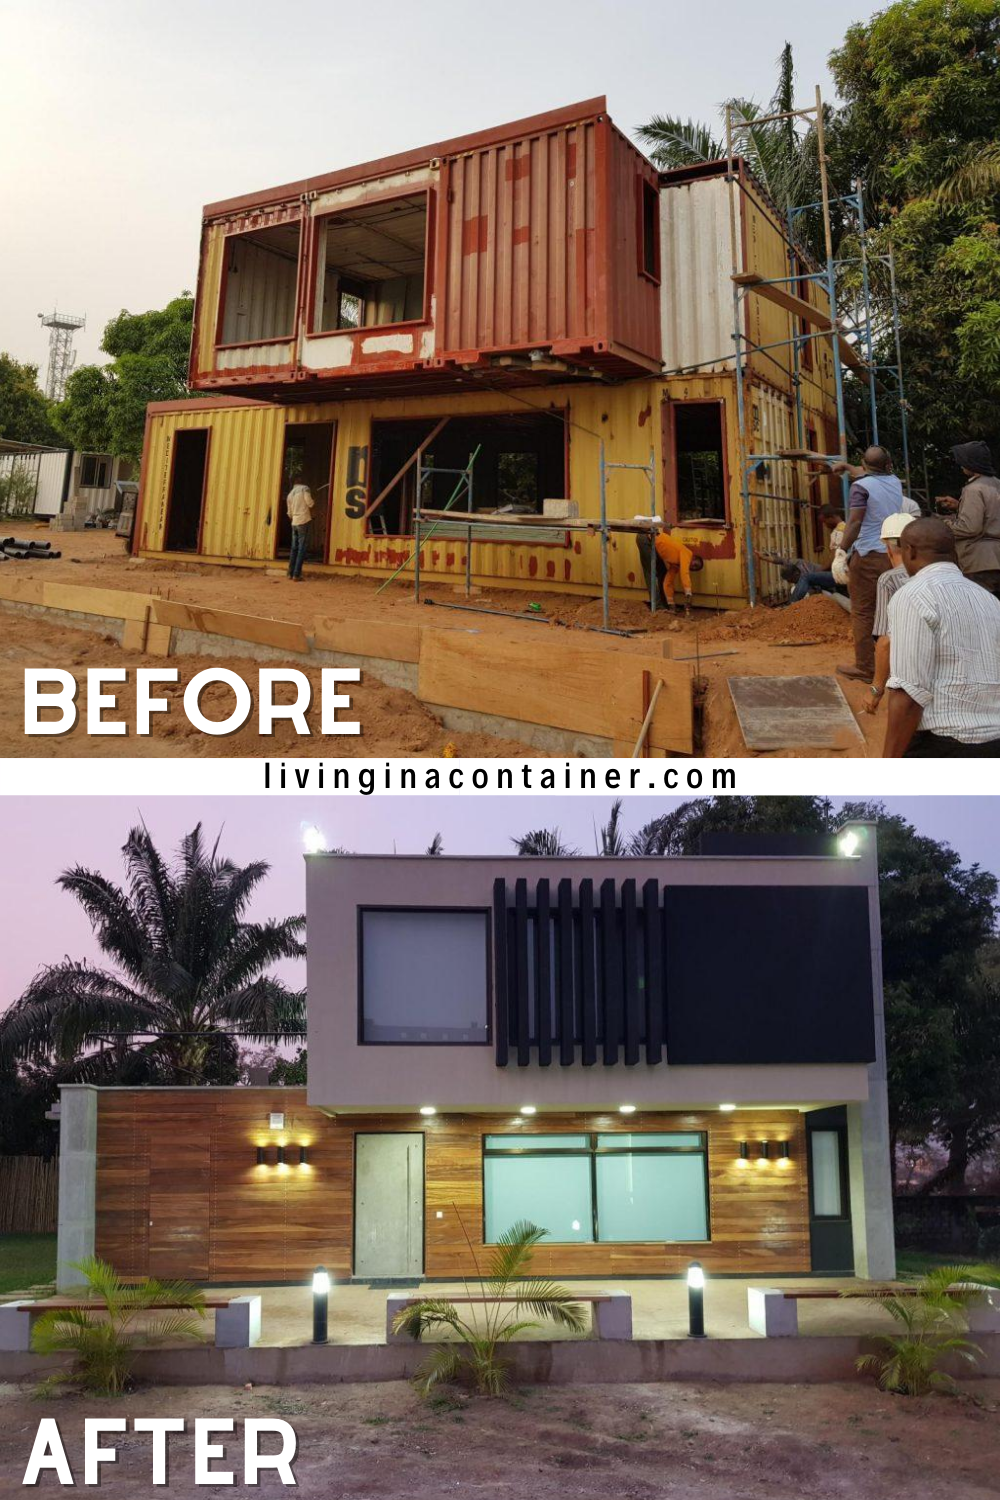 Shipping Container Home in Nigeria